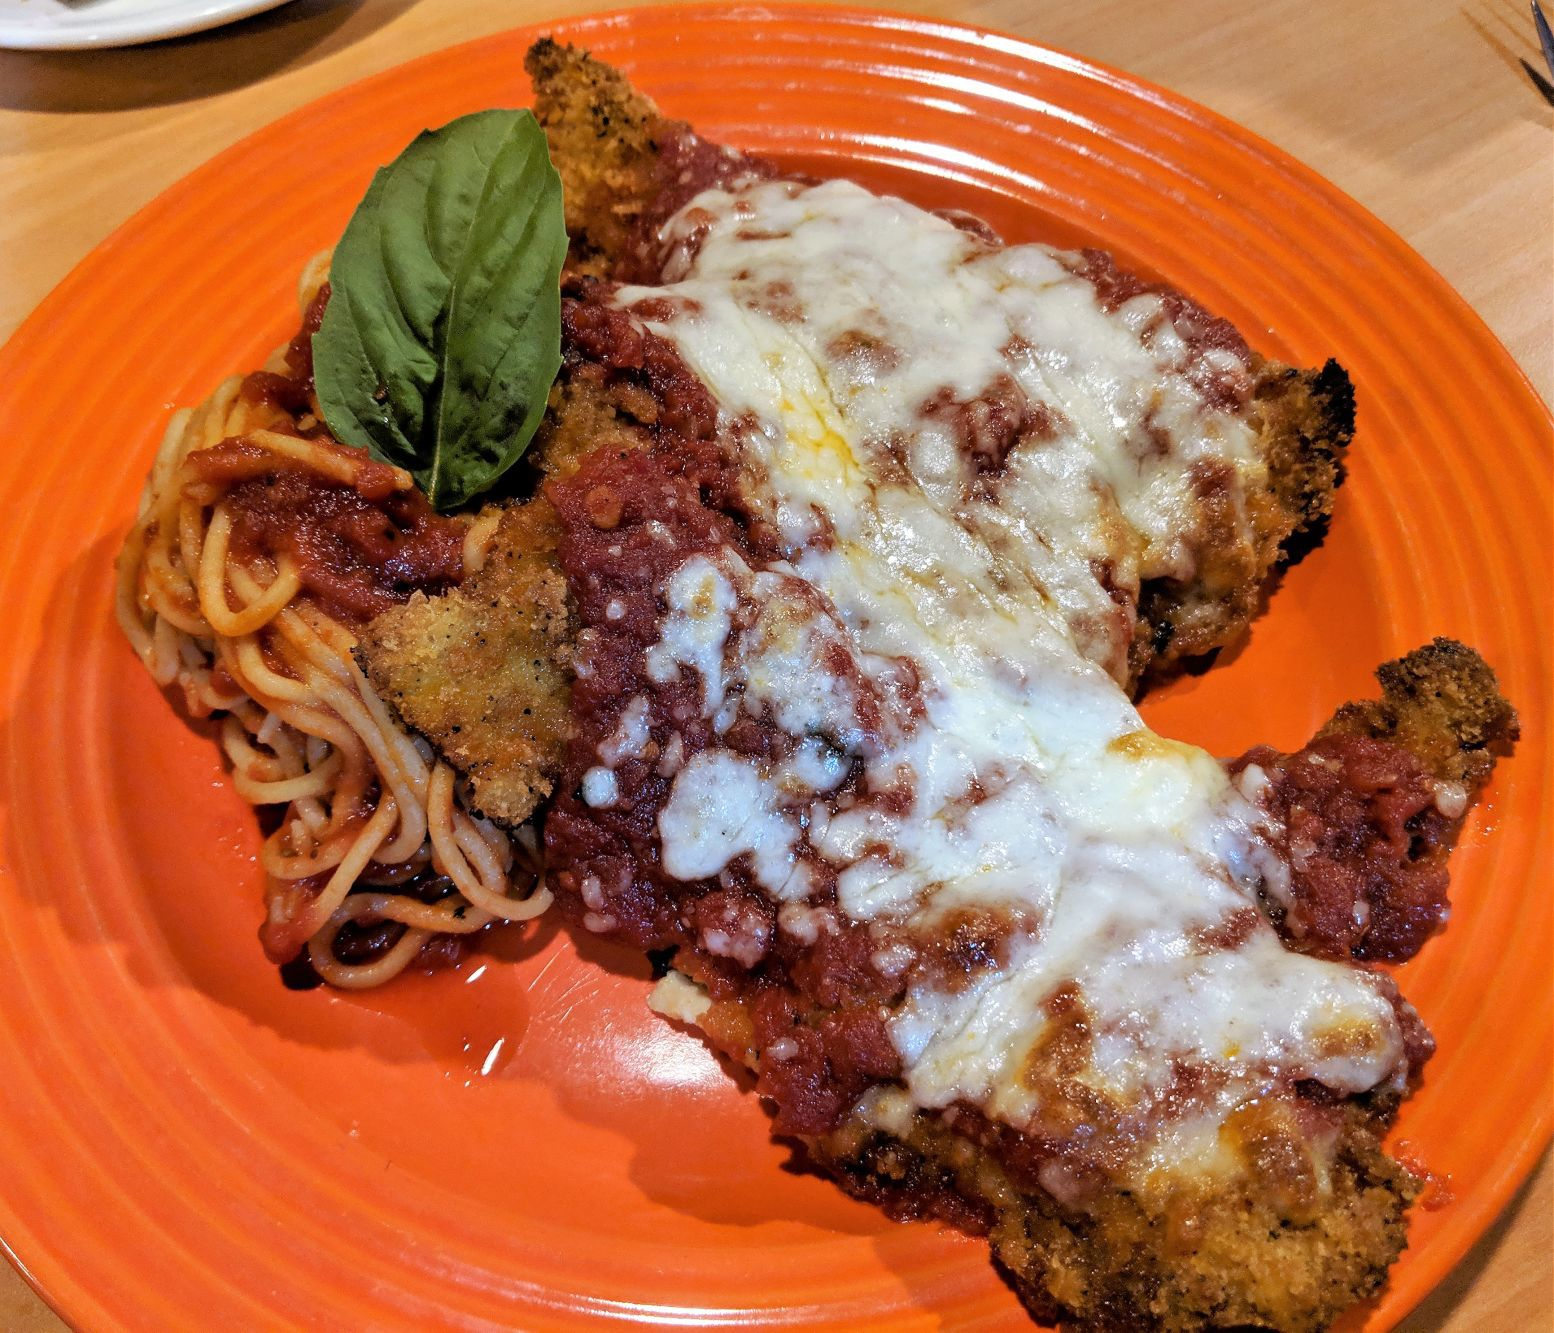 Italian Diner Discerning Diner New Cumberland Byob Offers Italian Food Made